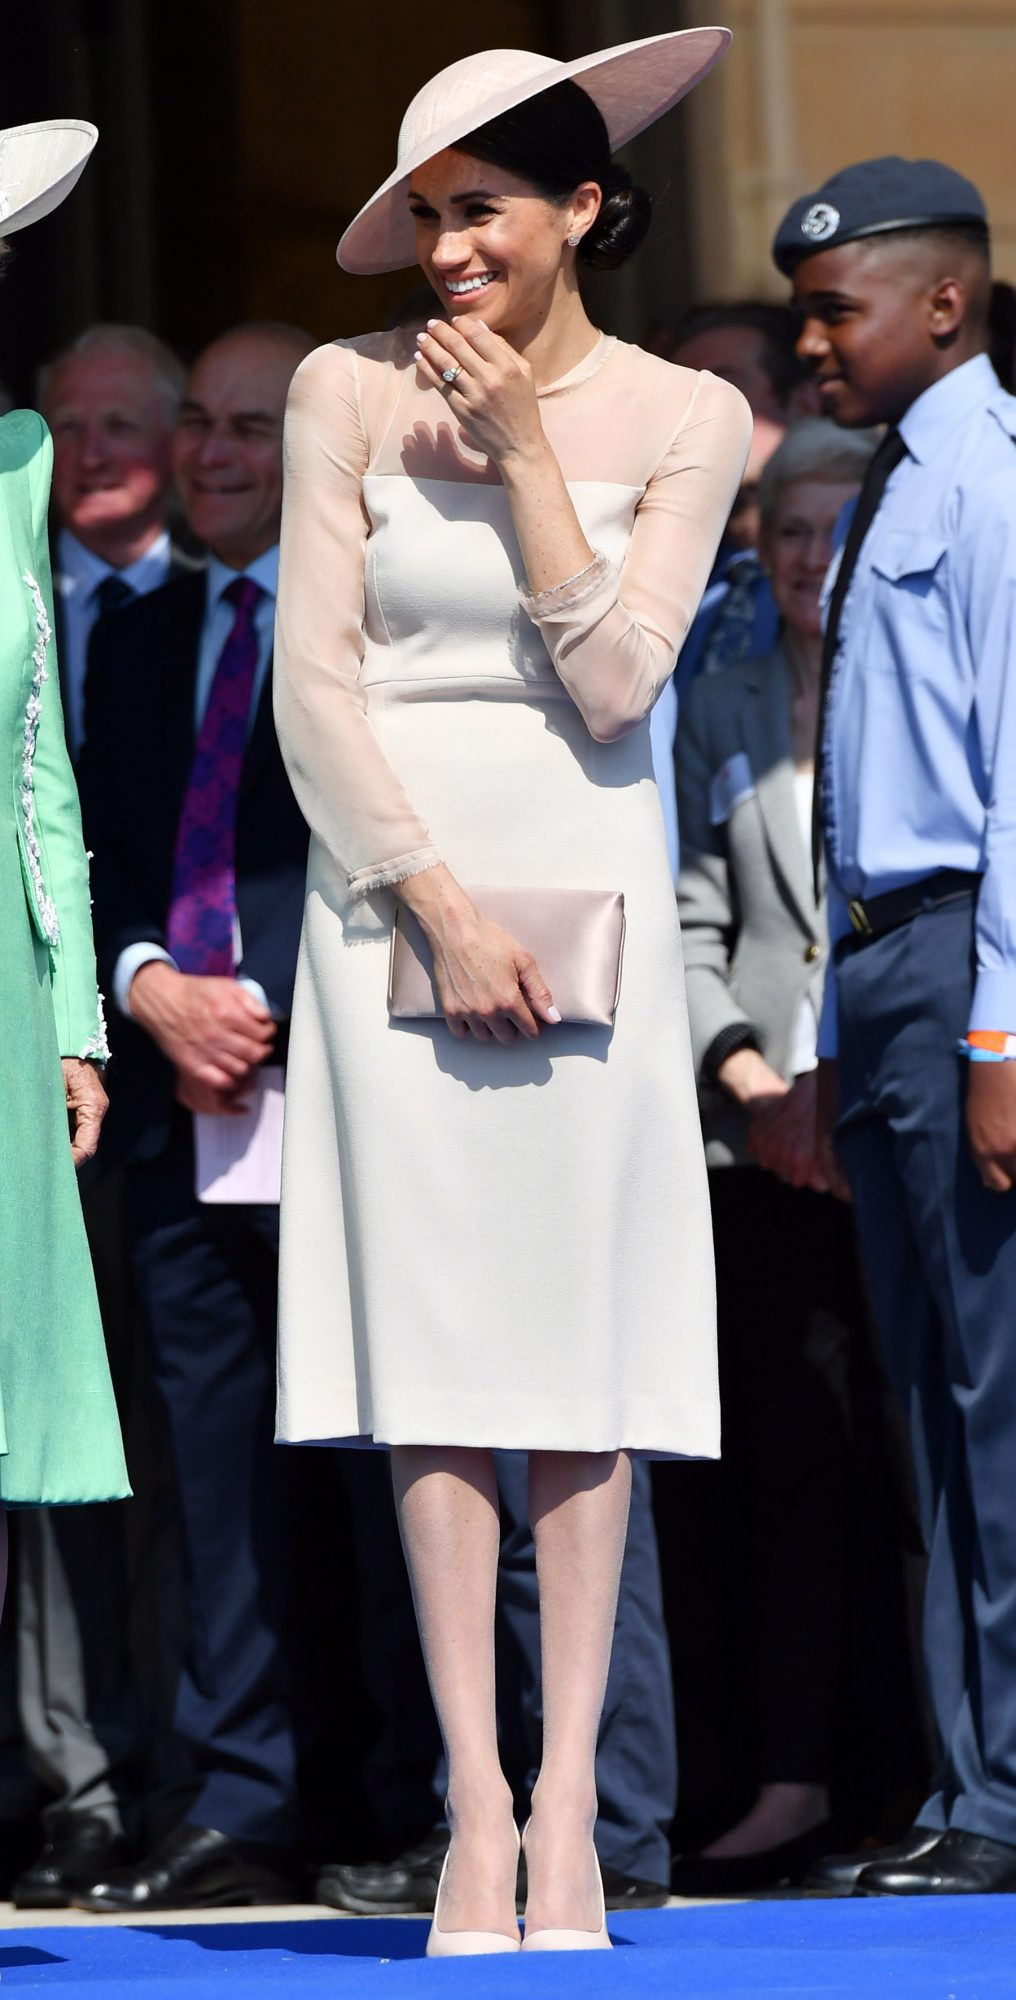 Meghan Markle Is Following the Royal Pantyhose Protocol for the First Time! meghan-1